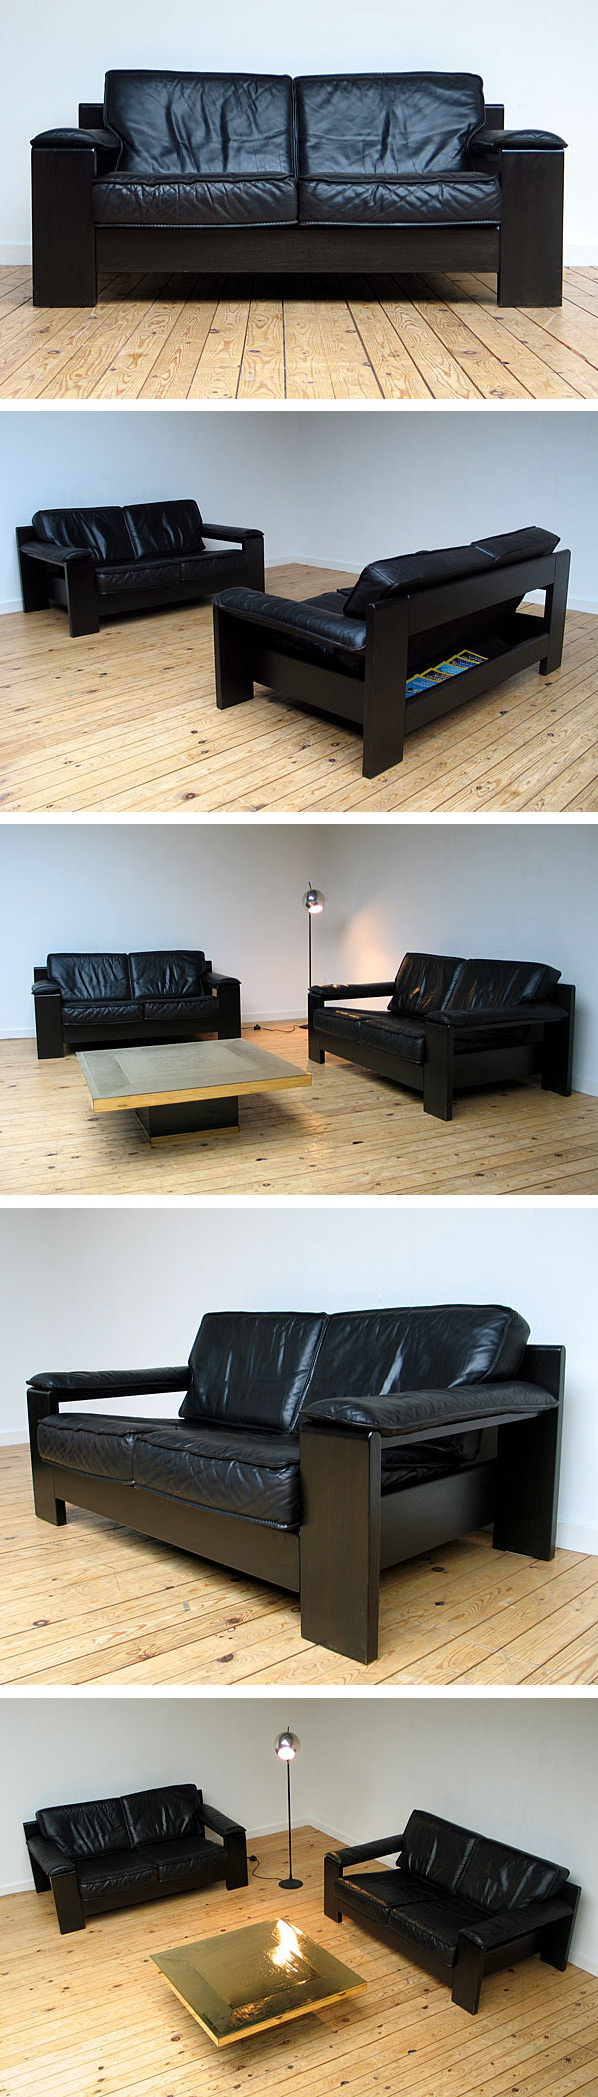 2 black leather Modern Leolux sofa's 1970 Large